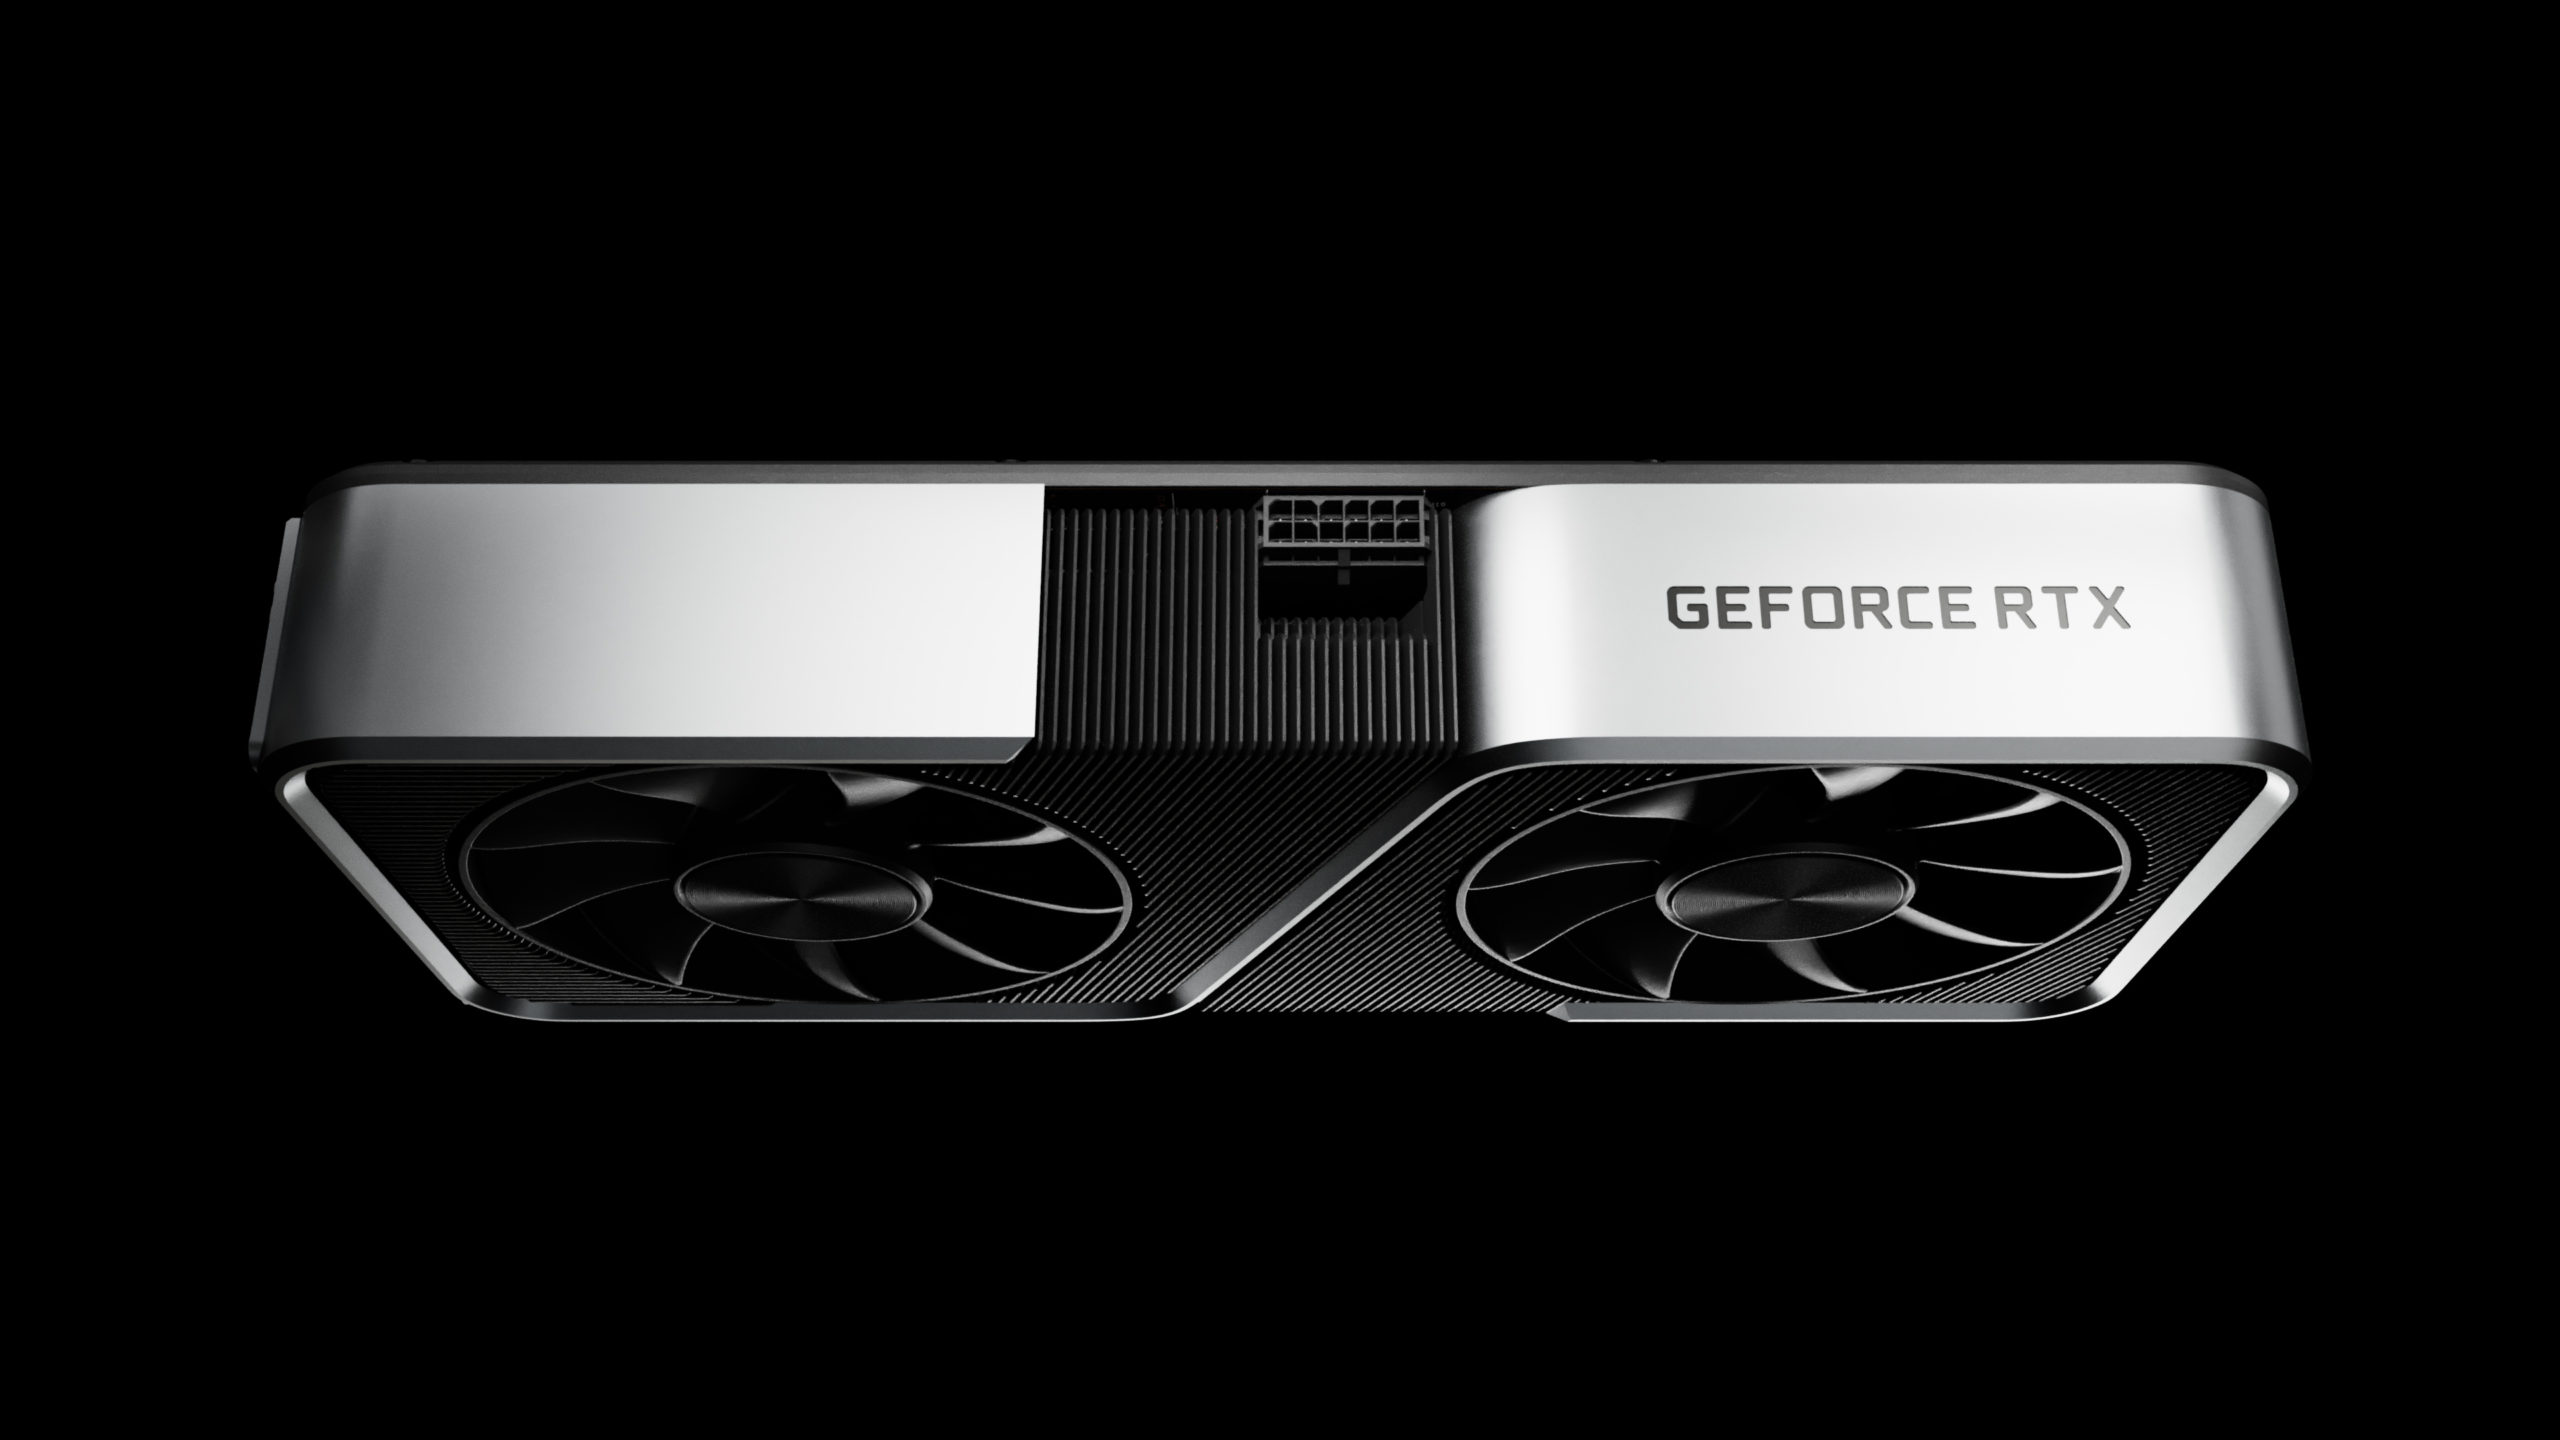 Nvidia GeForce RTX 3060 release date just leaked as cards are spotted in the wild